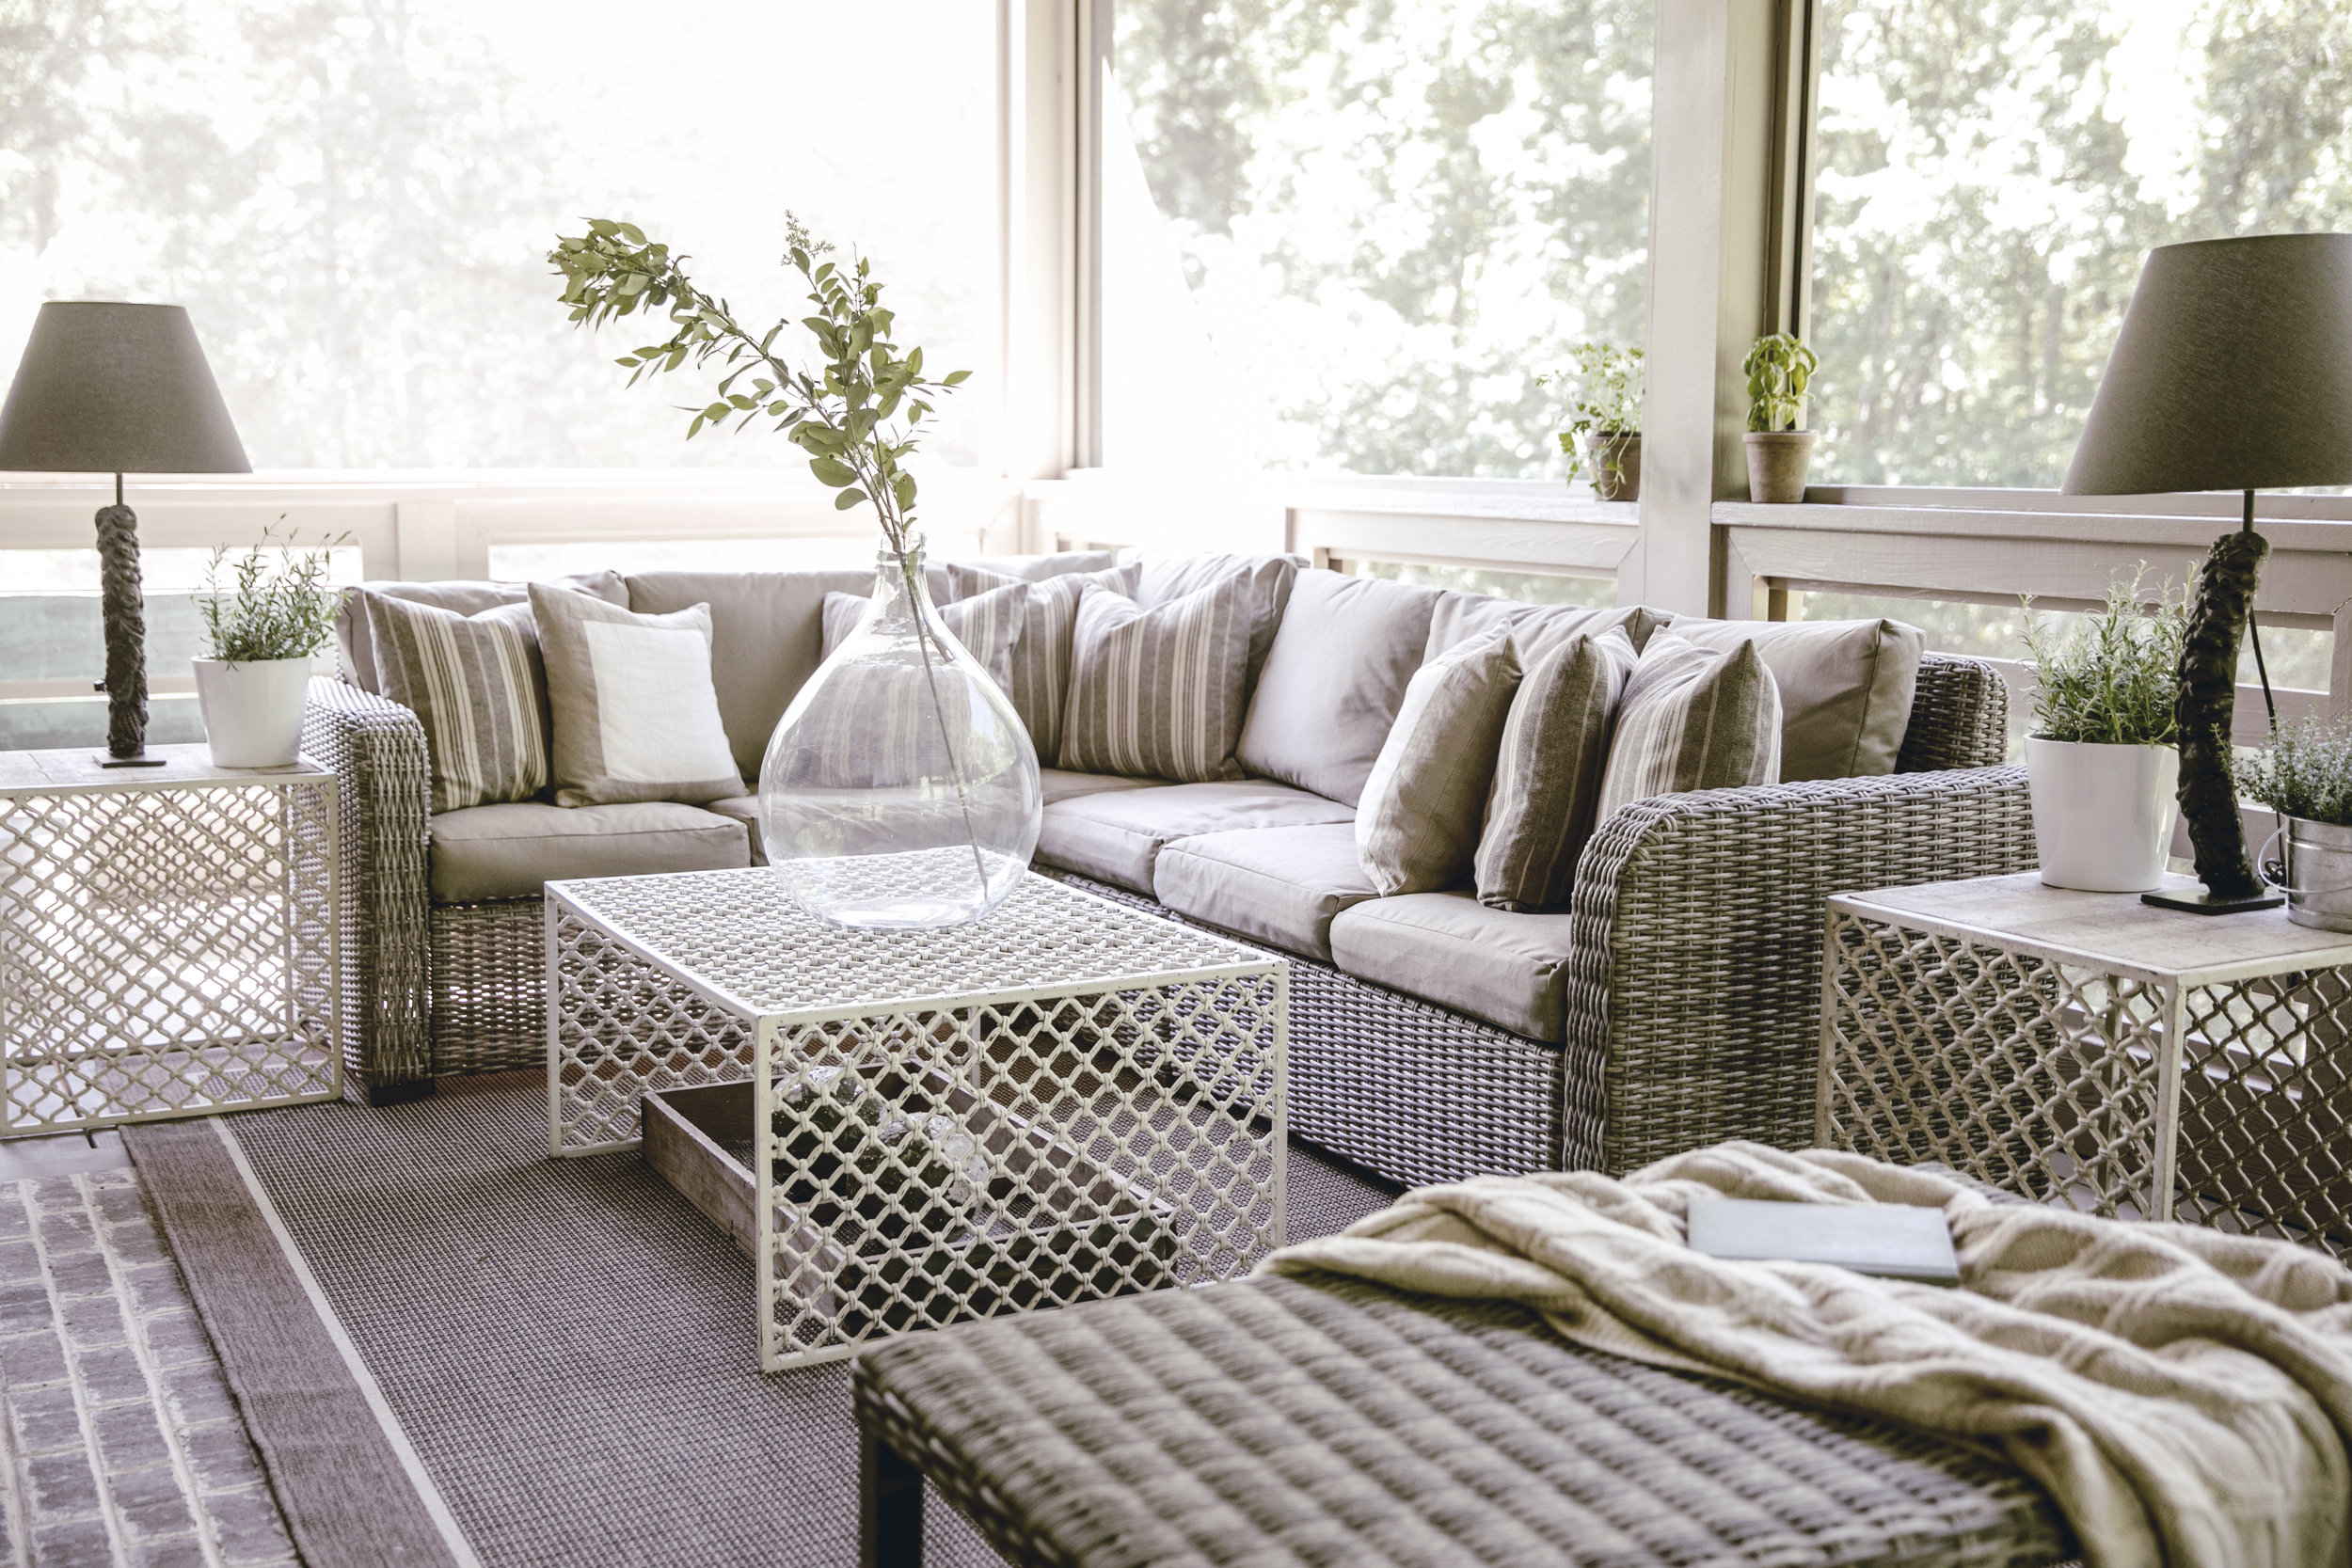 cozy outdoor screened in patio space  / heirloomed